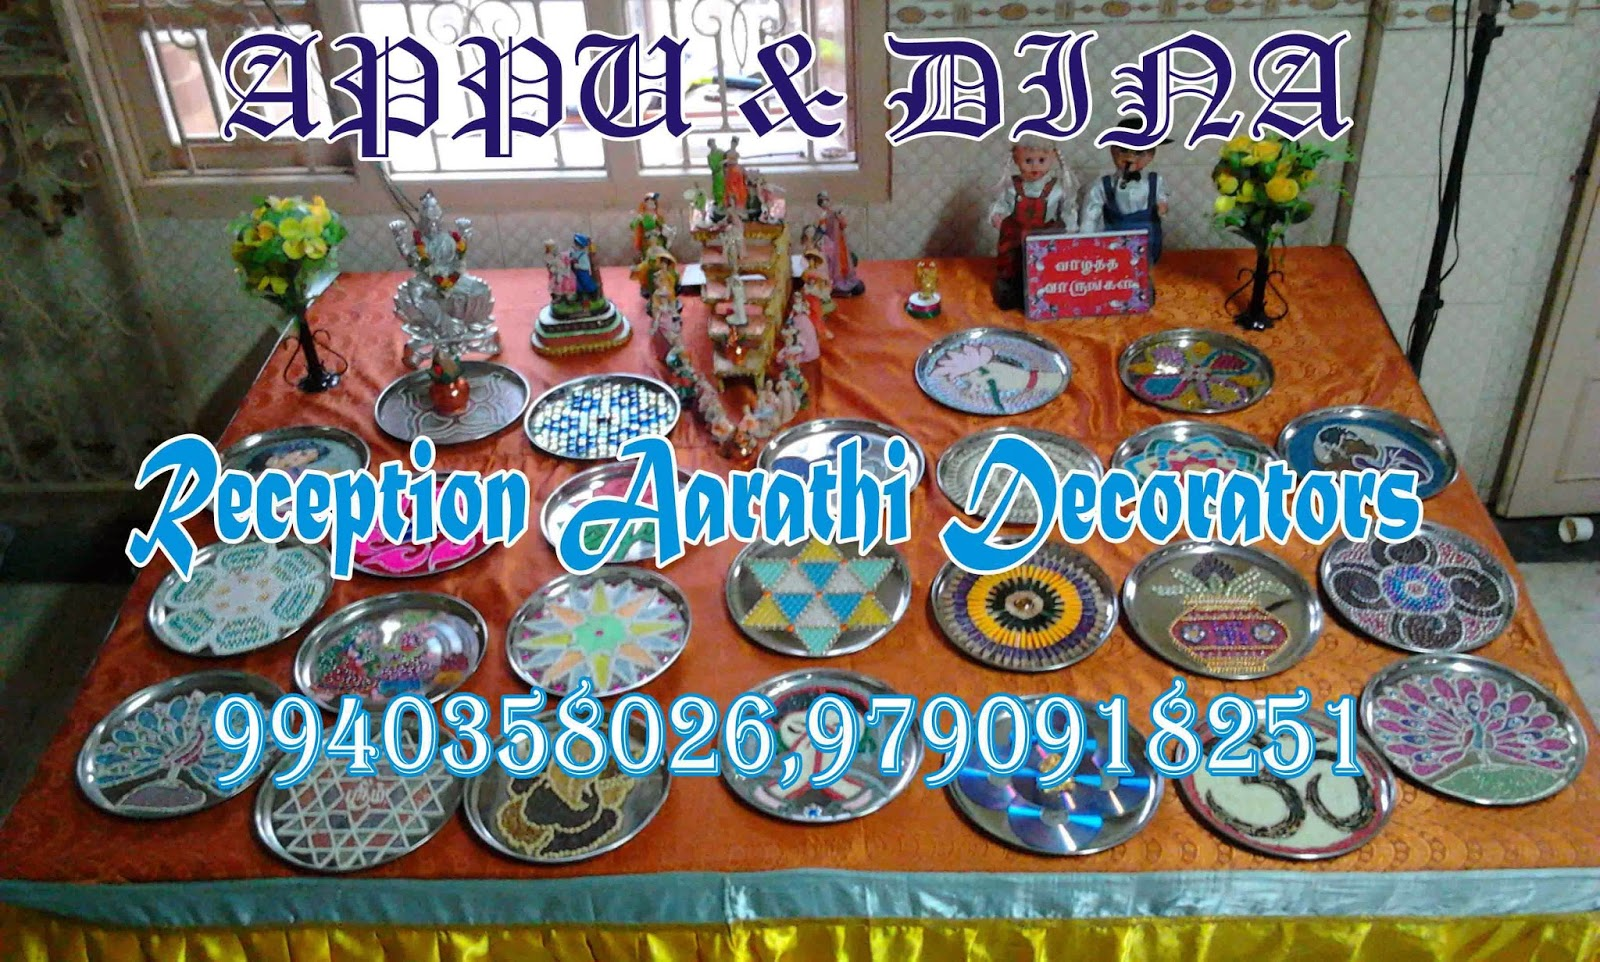 Aarathi plates we are decorating aarathi plates for any type of functions for rent we will be decorating it in a grand manner with dollslighting and etc junglespirit Gallery